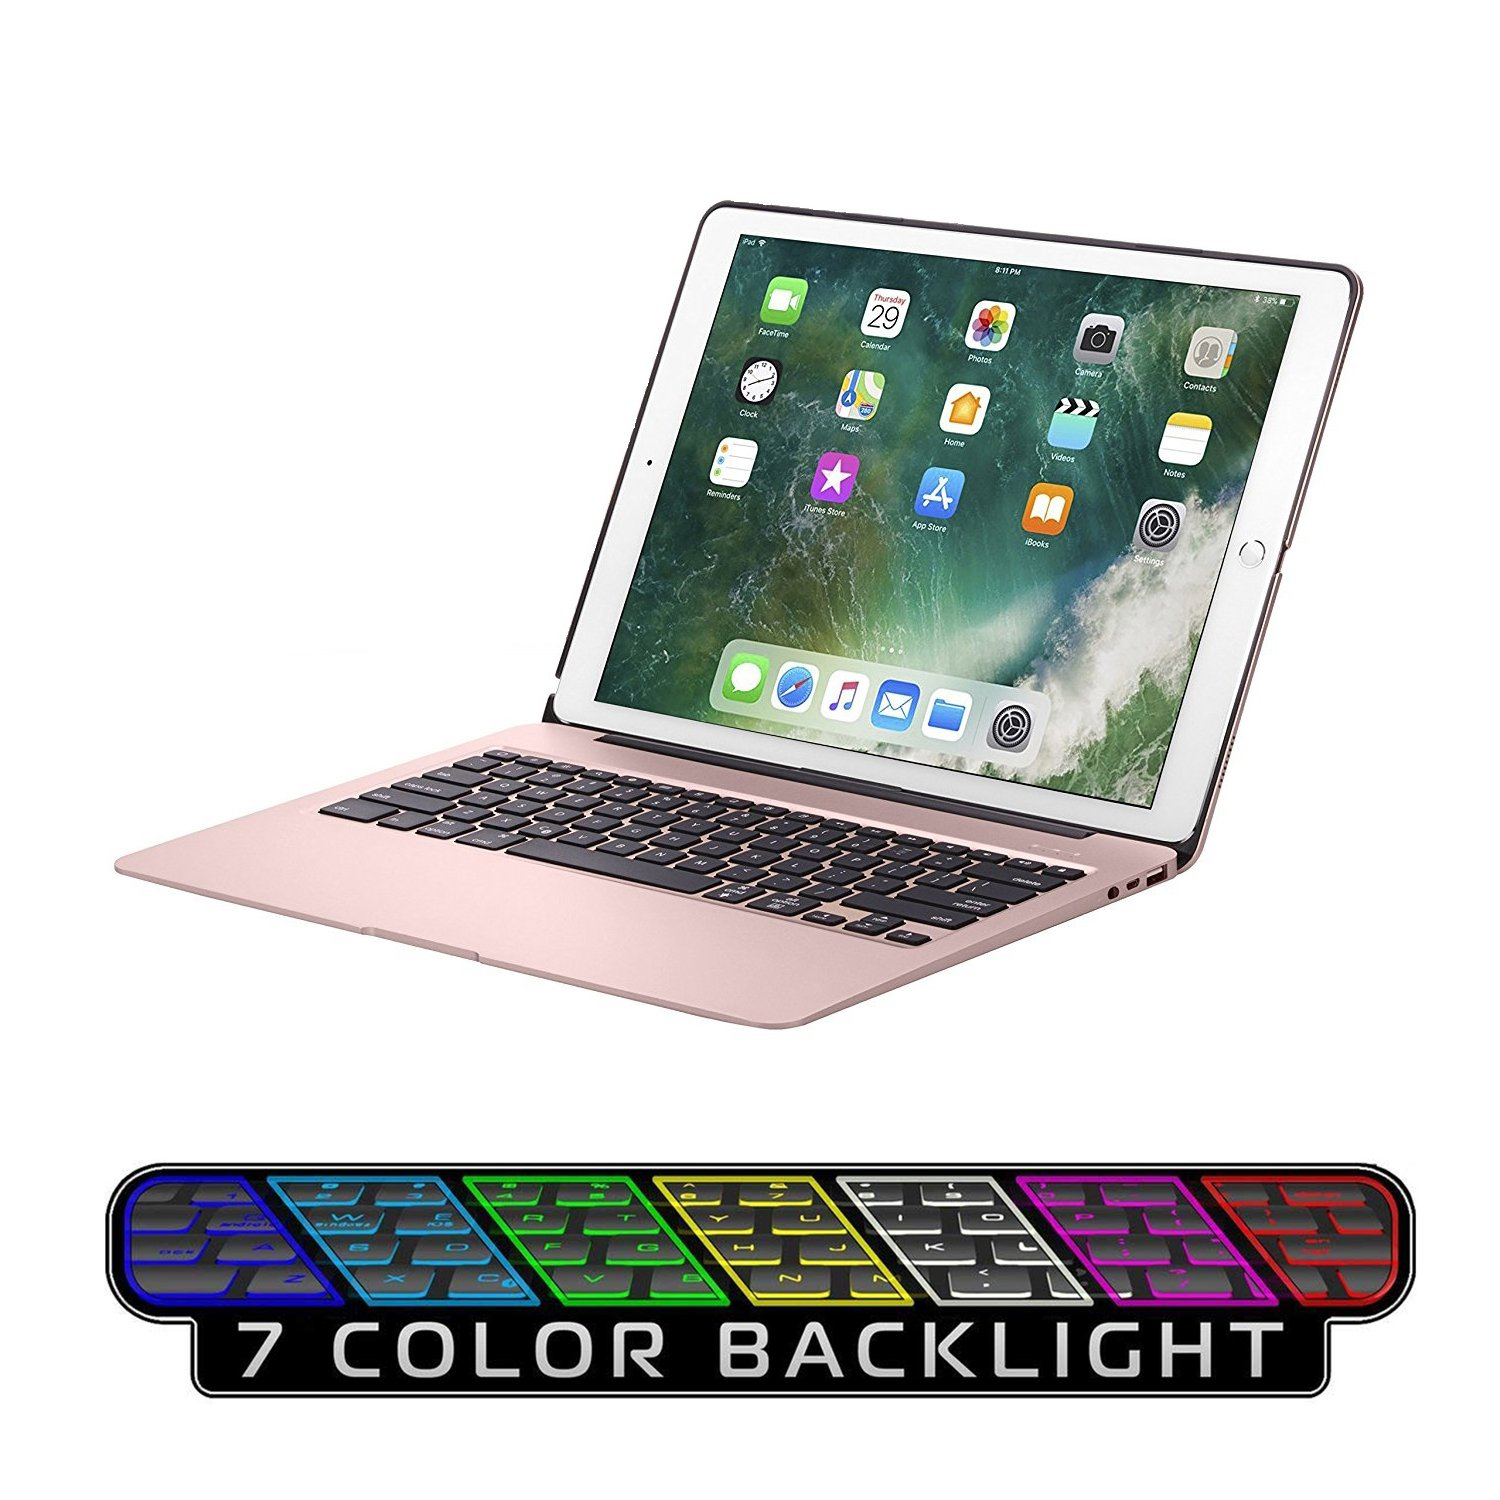 Keyboard Case for iPad Pro 12.9,7 Colors Backlight Slim Aluminum Wireless Keyboard with Protective Translucent Silicone Keyboard Cover and 5600 mAh Power Bank for iPad Pro 12.9 inch(12.9 Rose Gold) by KINGZE (Image #1)